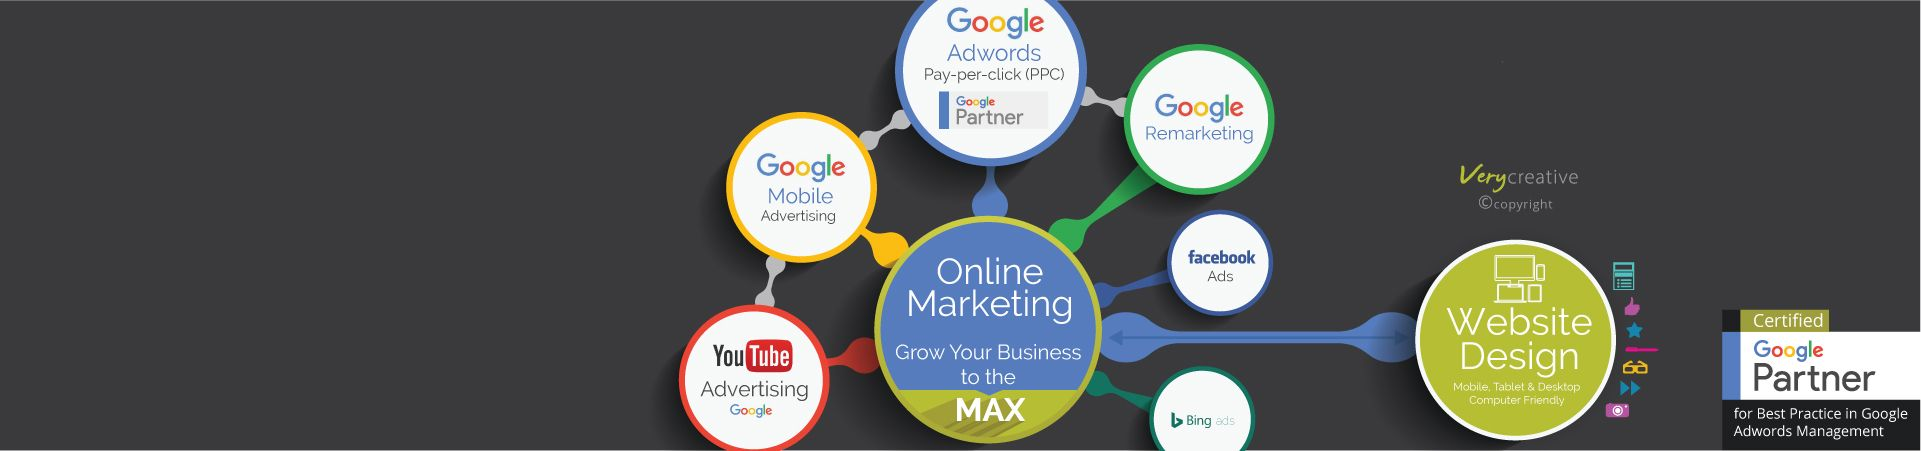 google-adwords-ppc-payperclick-pay-per-click-partner-agency-london